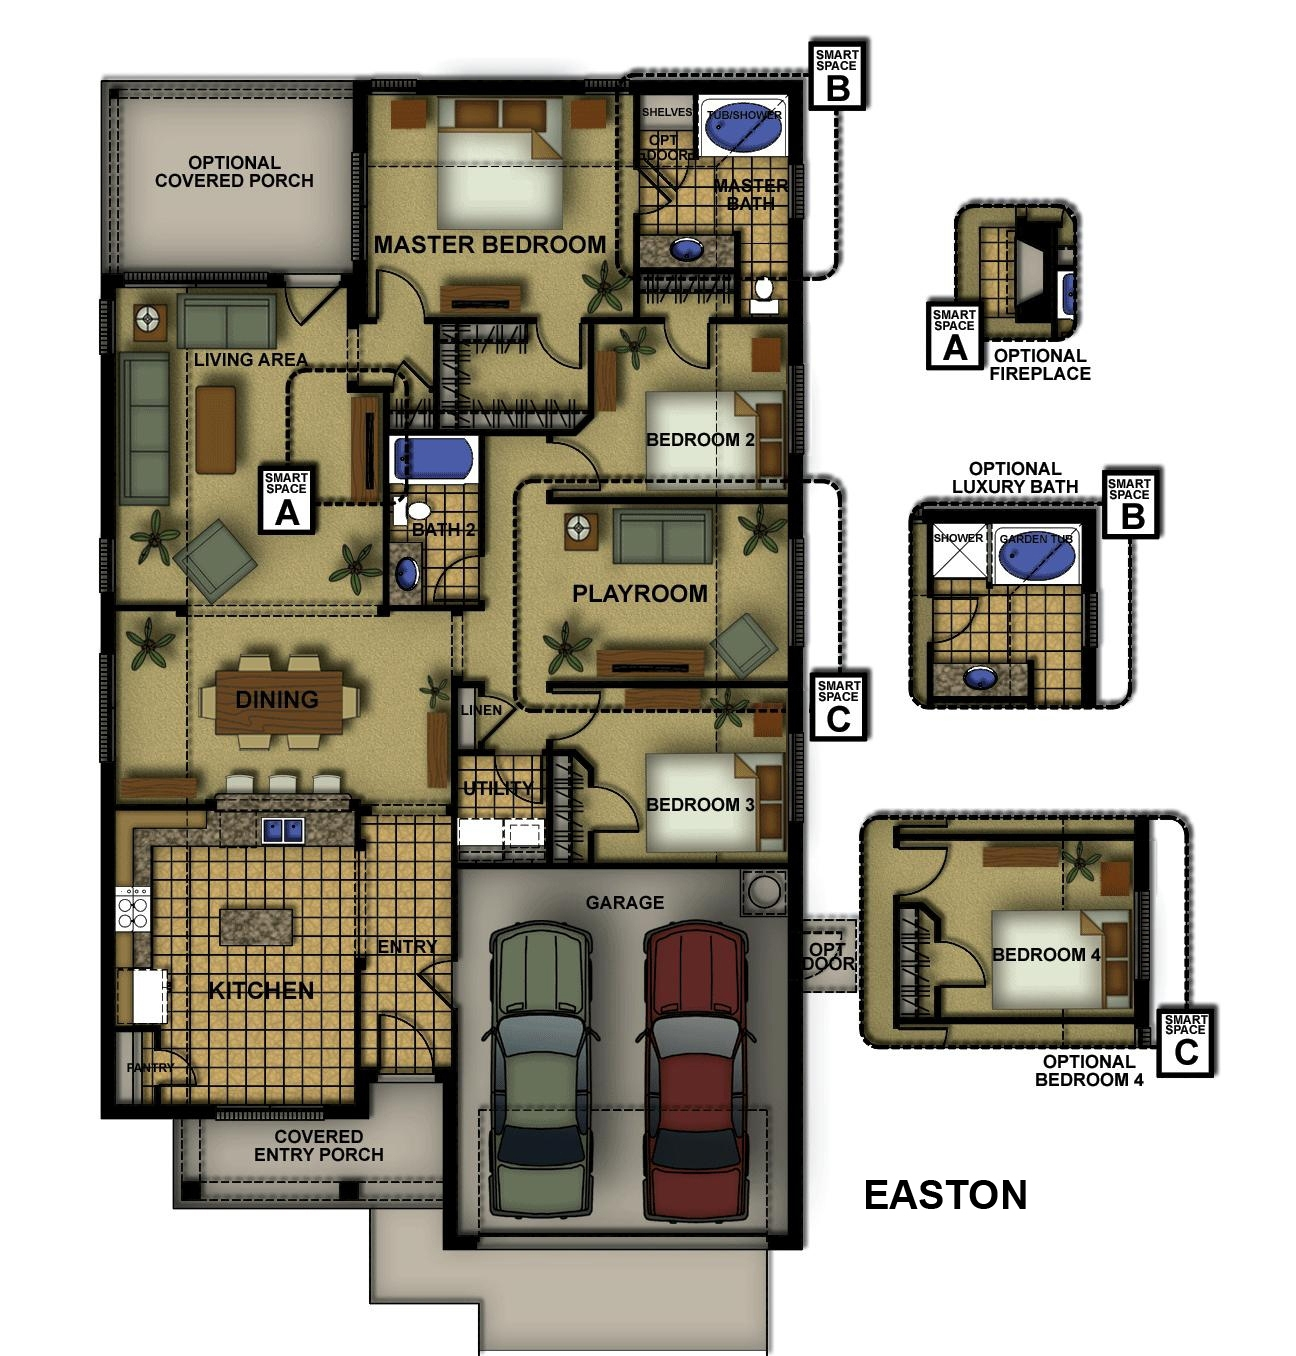 Easton-II Floorplan